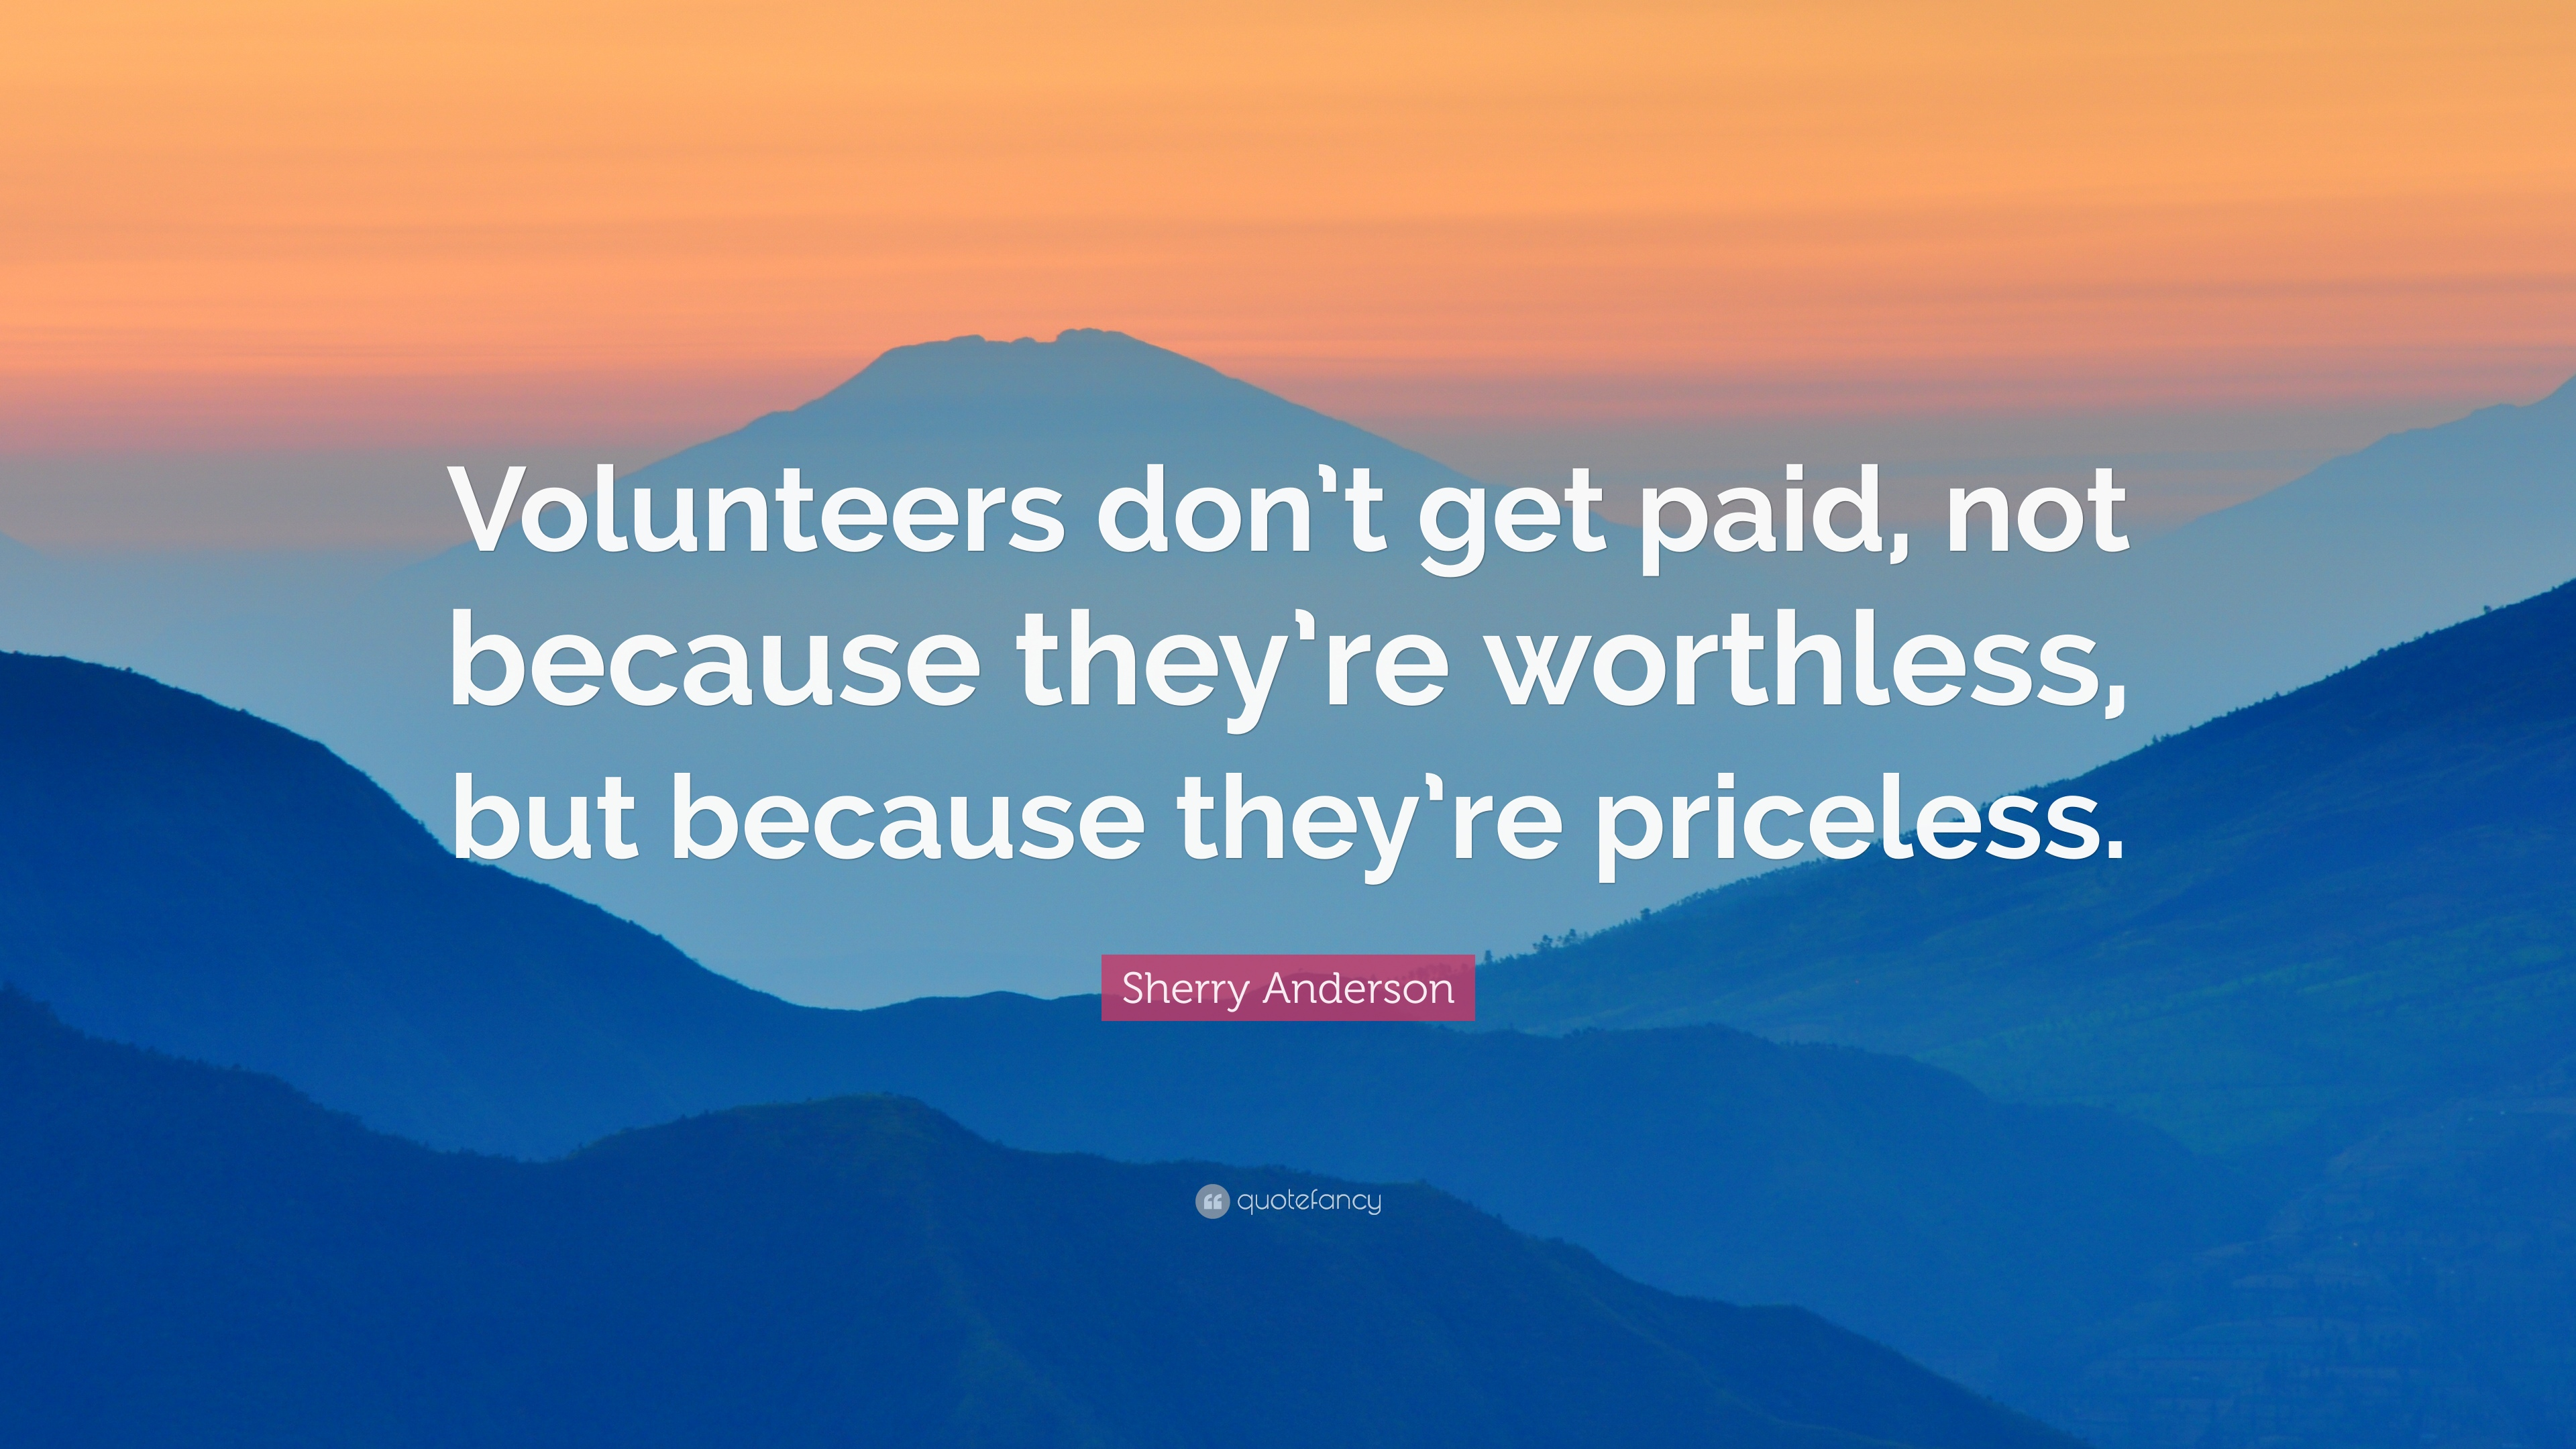 Volunteering Quotes Volunteer Quotes 40 Wallpapers  Quotefancy